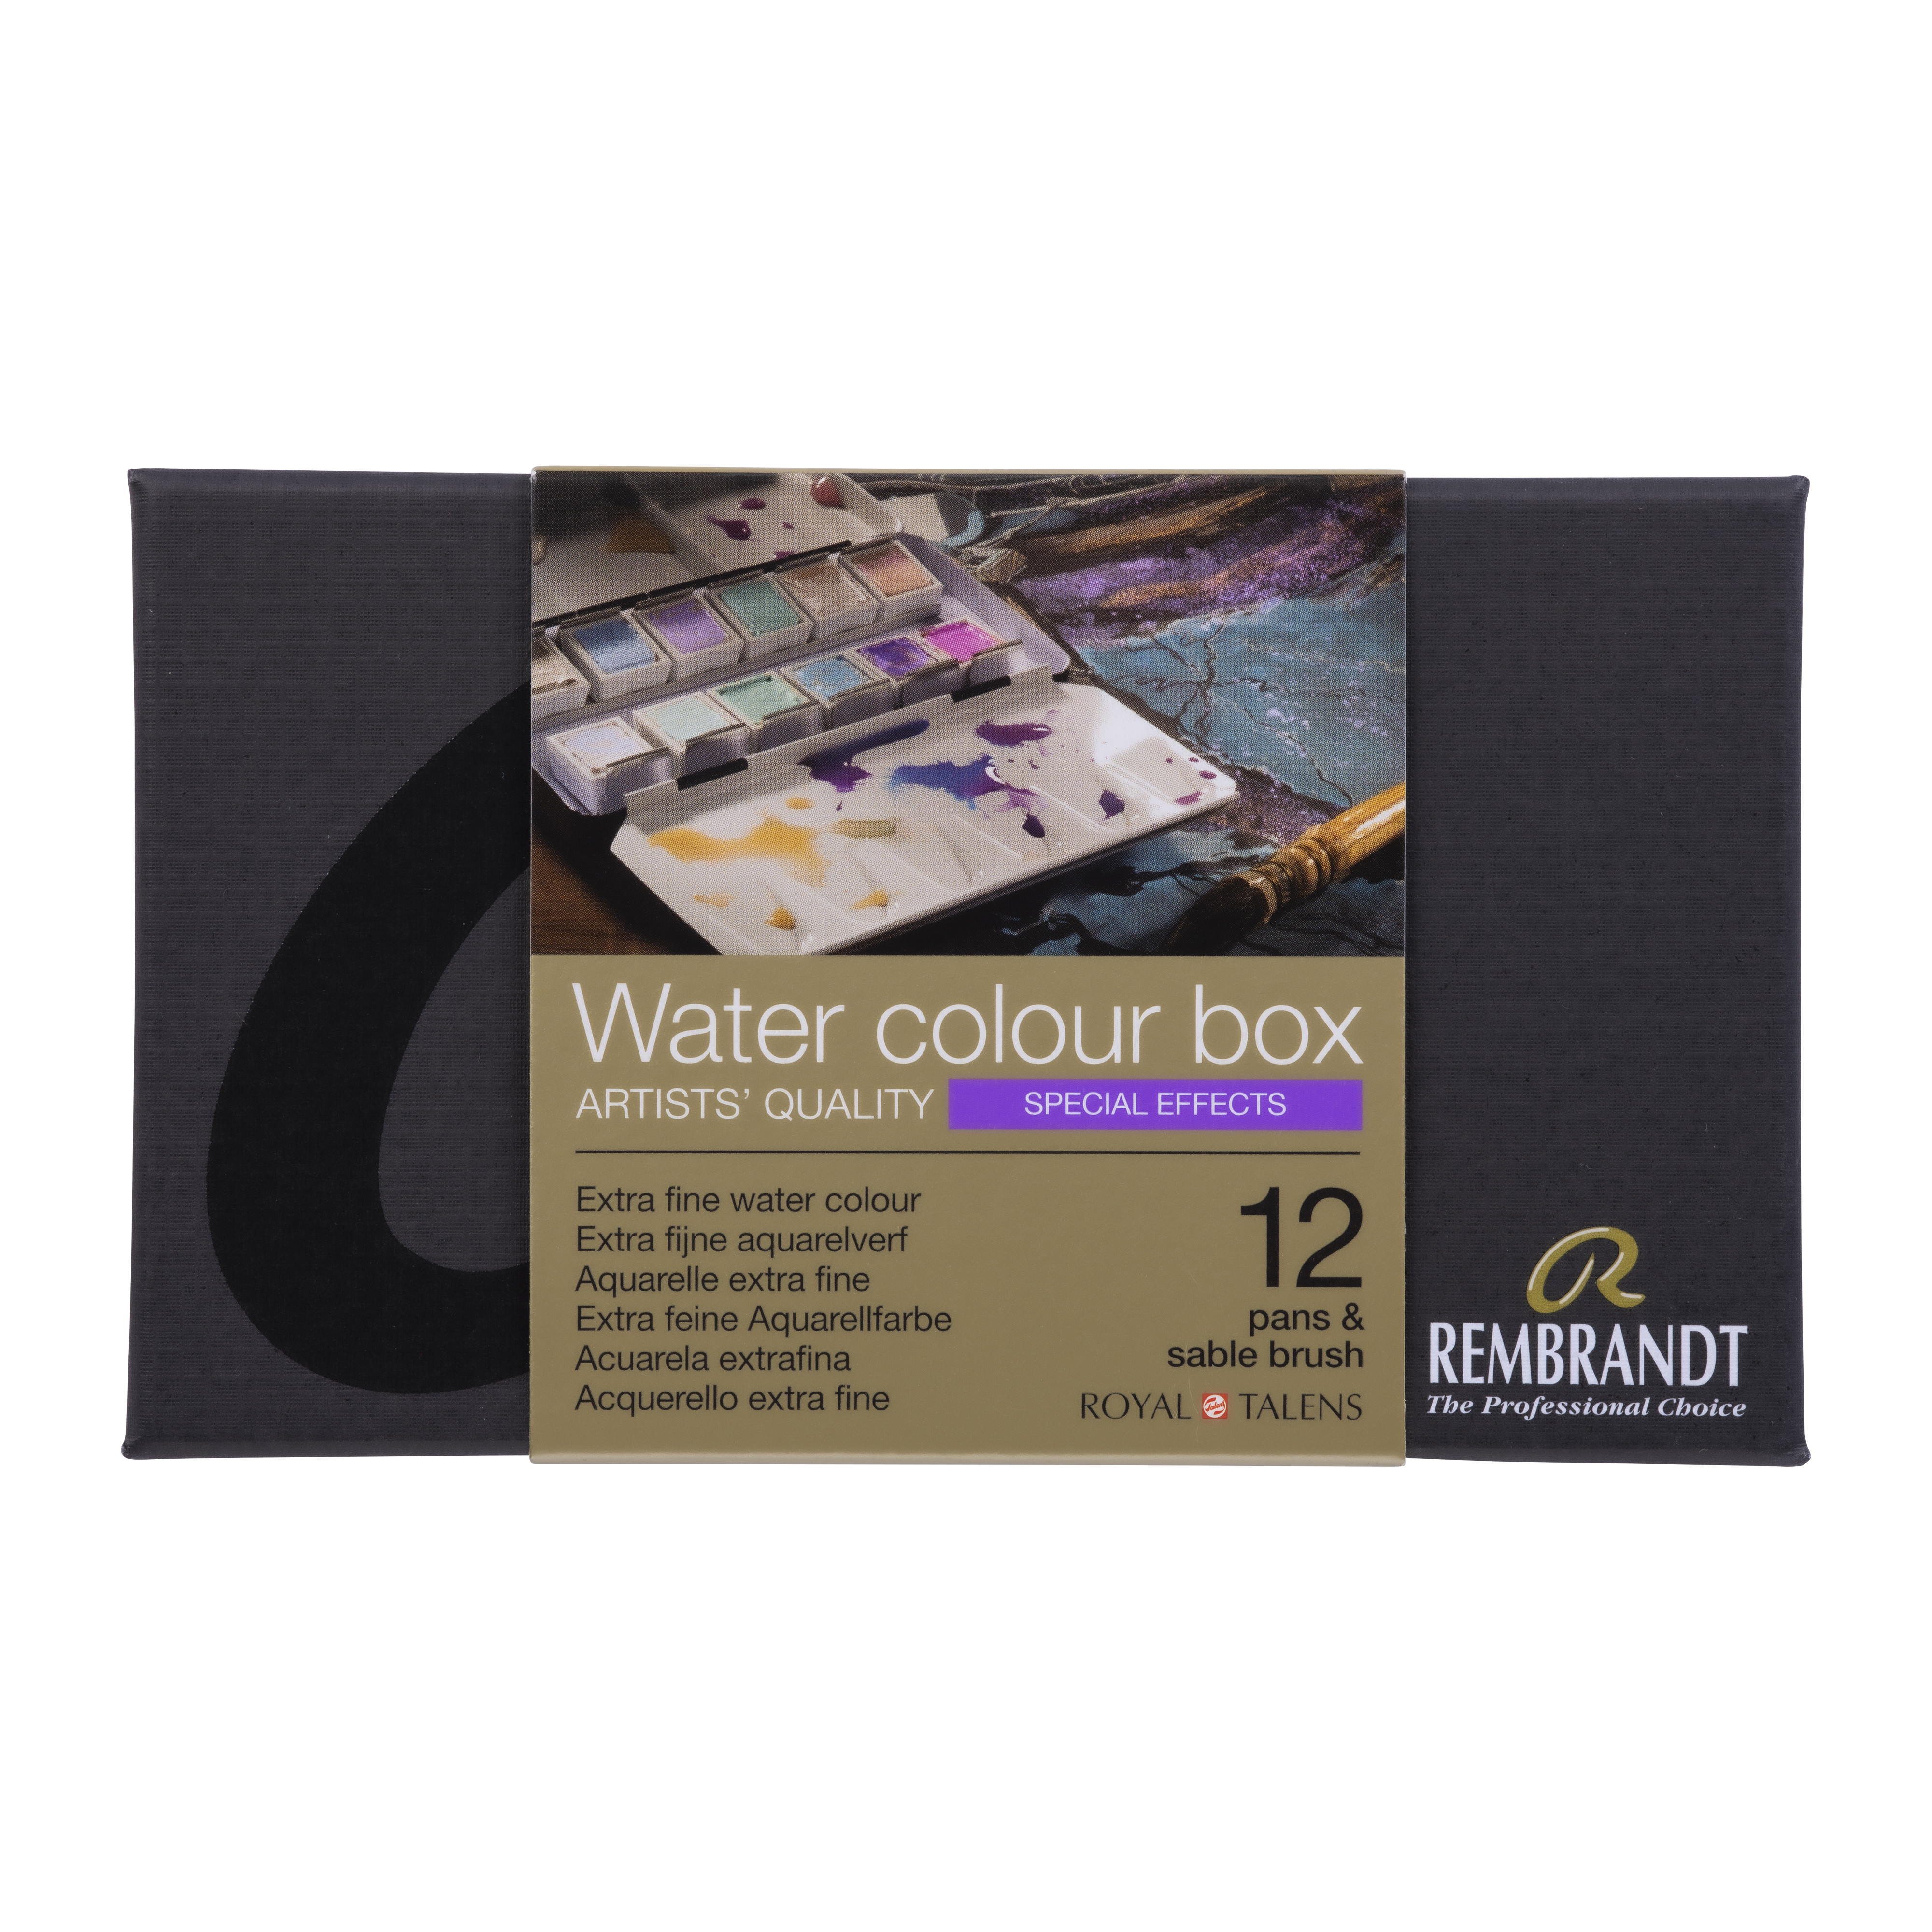 Rembrandt Professional Watercolour Paint, Metal Tin Set, 12 Pans + 1 Brush, Special Effects colour Selection (Interference, Chameleon, Spark)